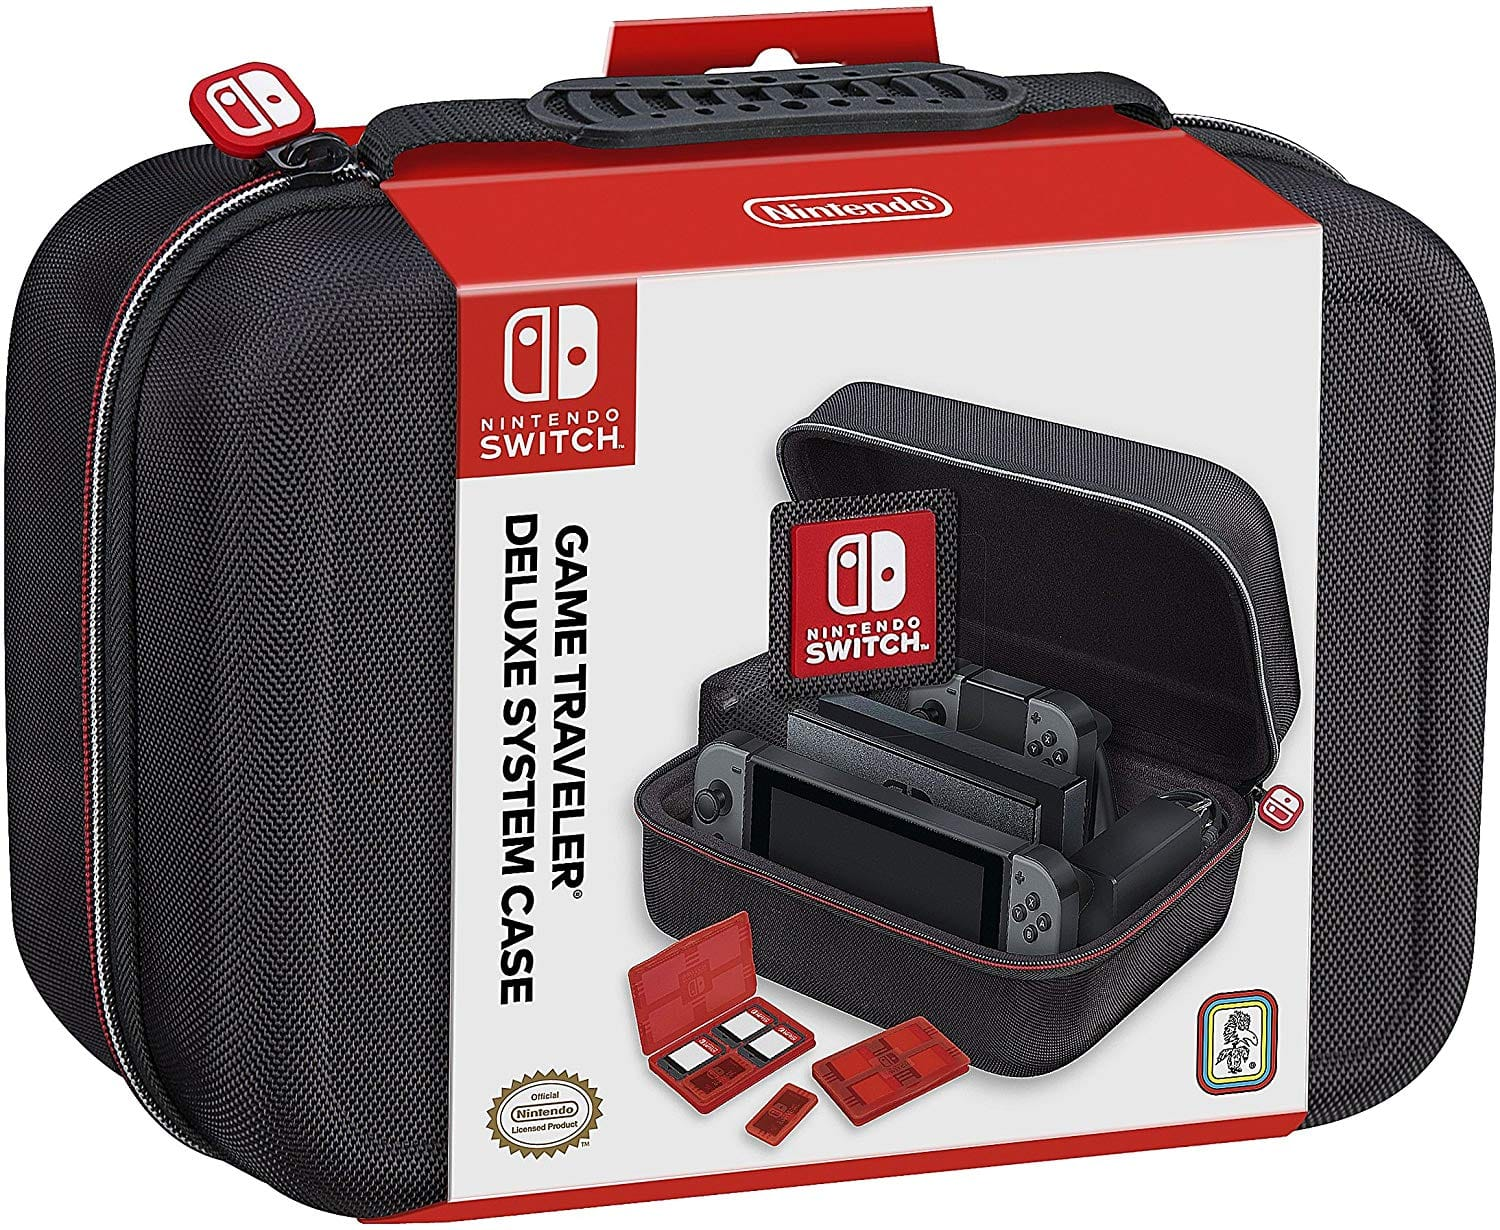 Nintendo Switch System Carrying Case – Protective Deluxe Travel System Case – Black Ballistic Nylon Exterior – Official Nintendo Licensed Product $29